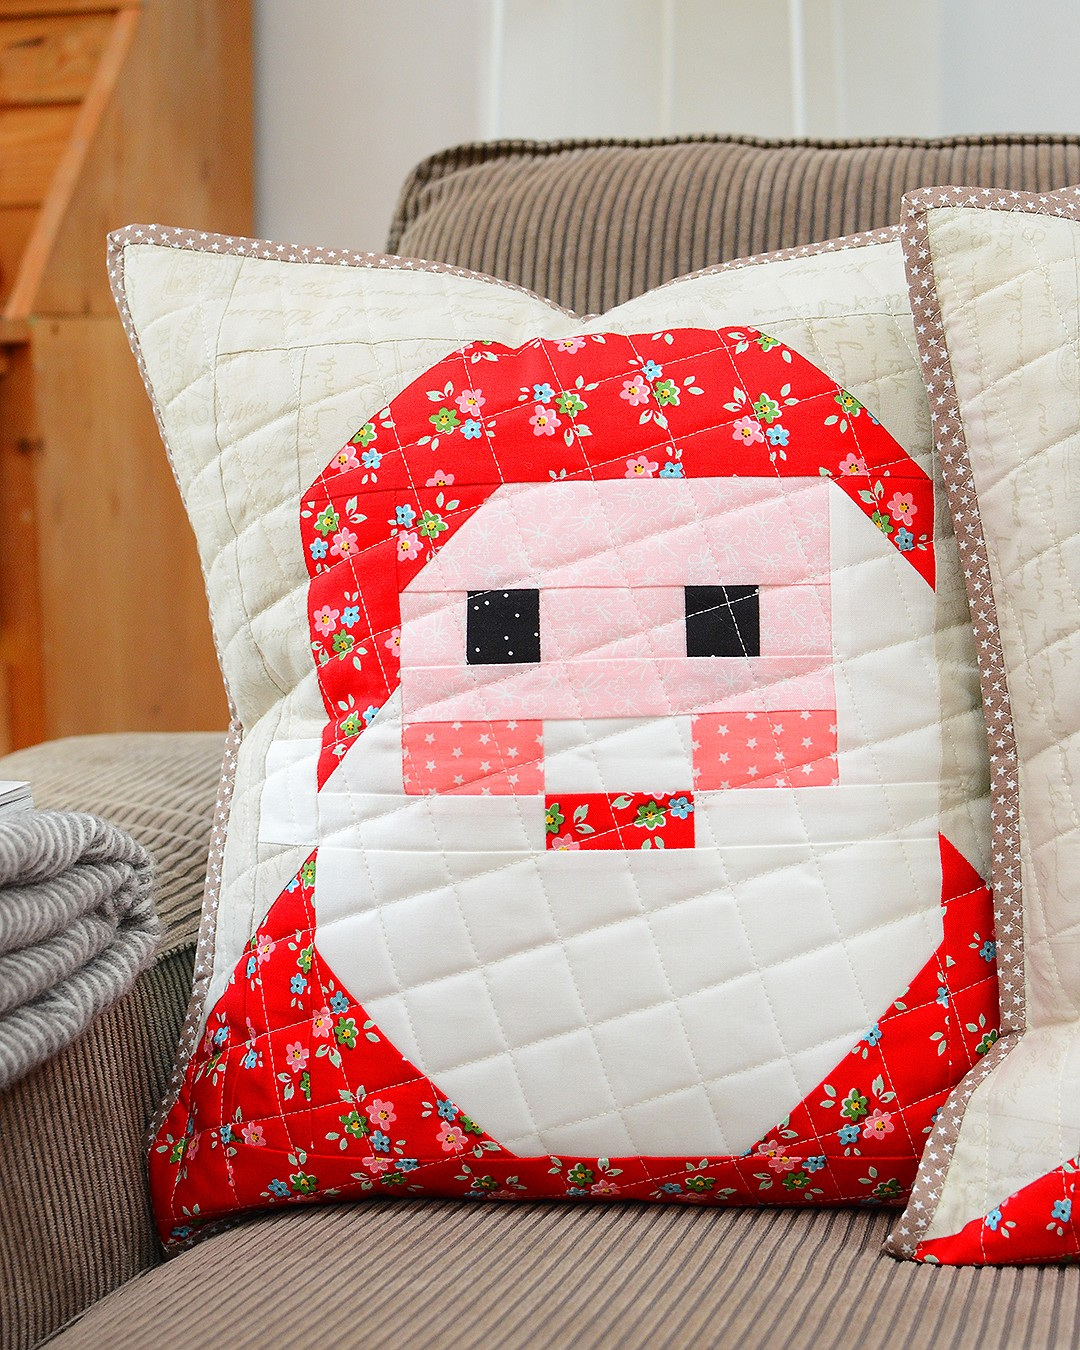 Santa Claus and Mrs. Santa Claus quilted pillow - a free tutorial